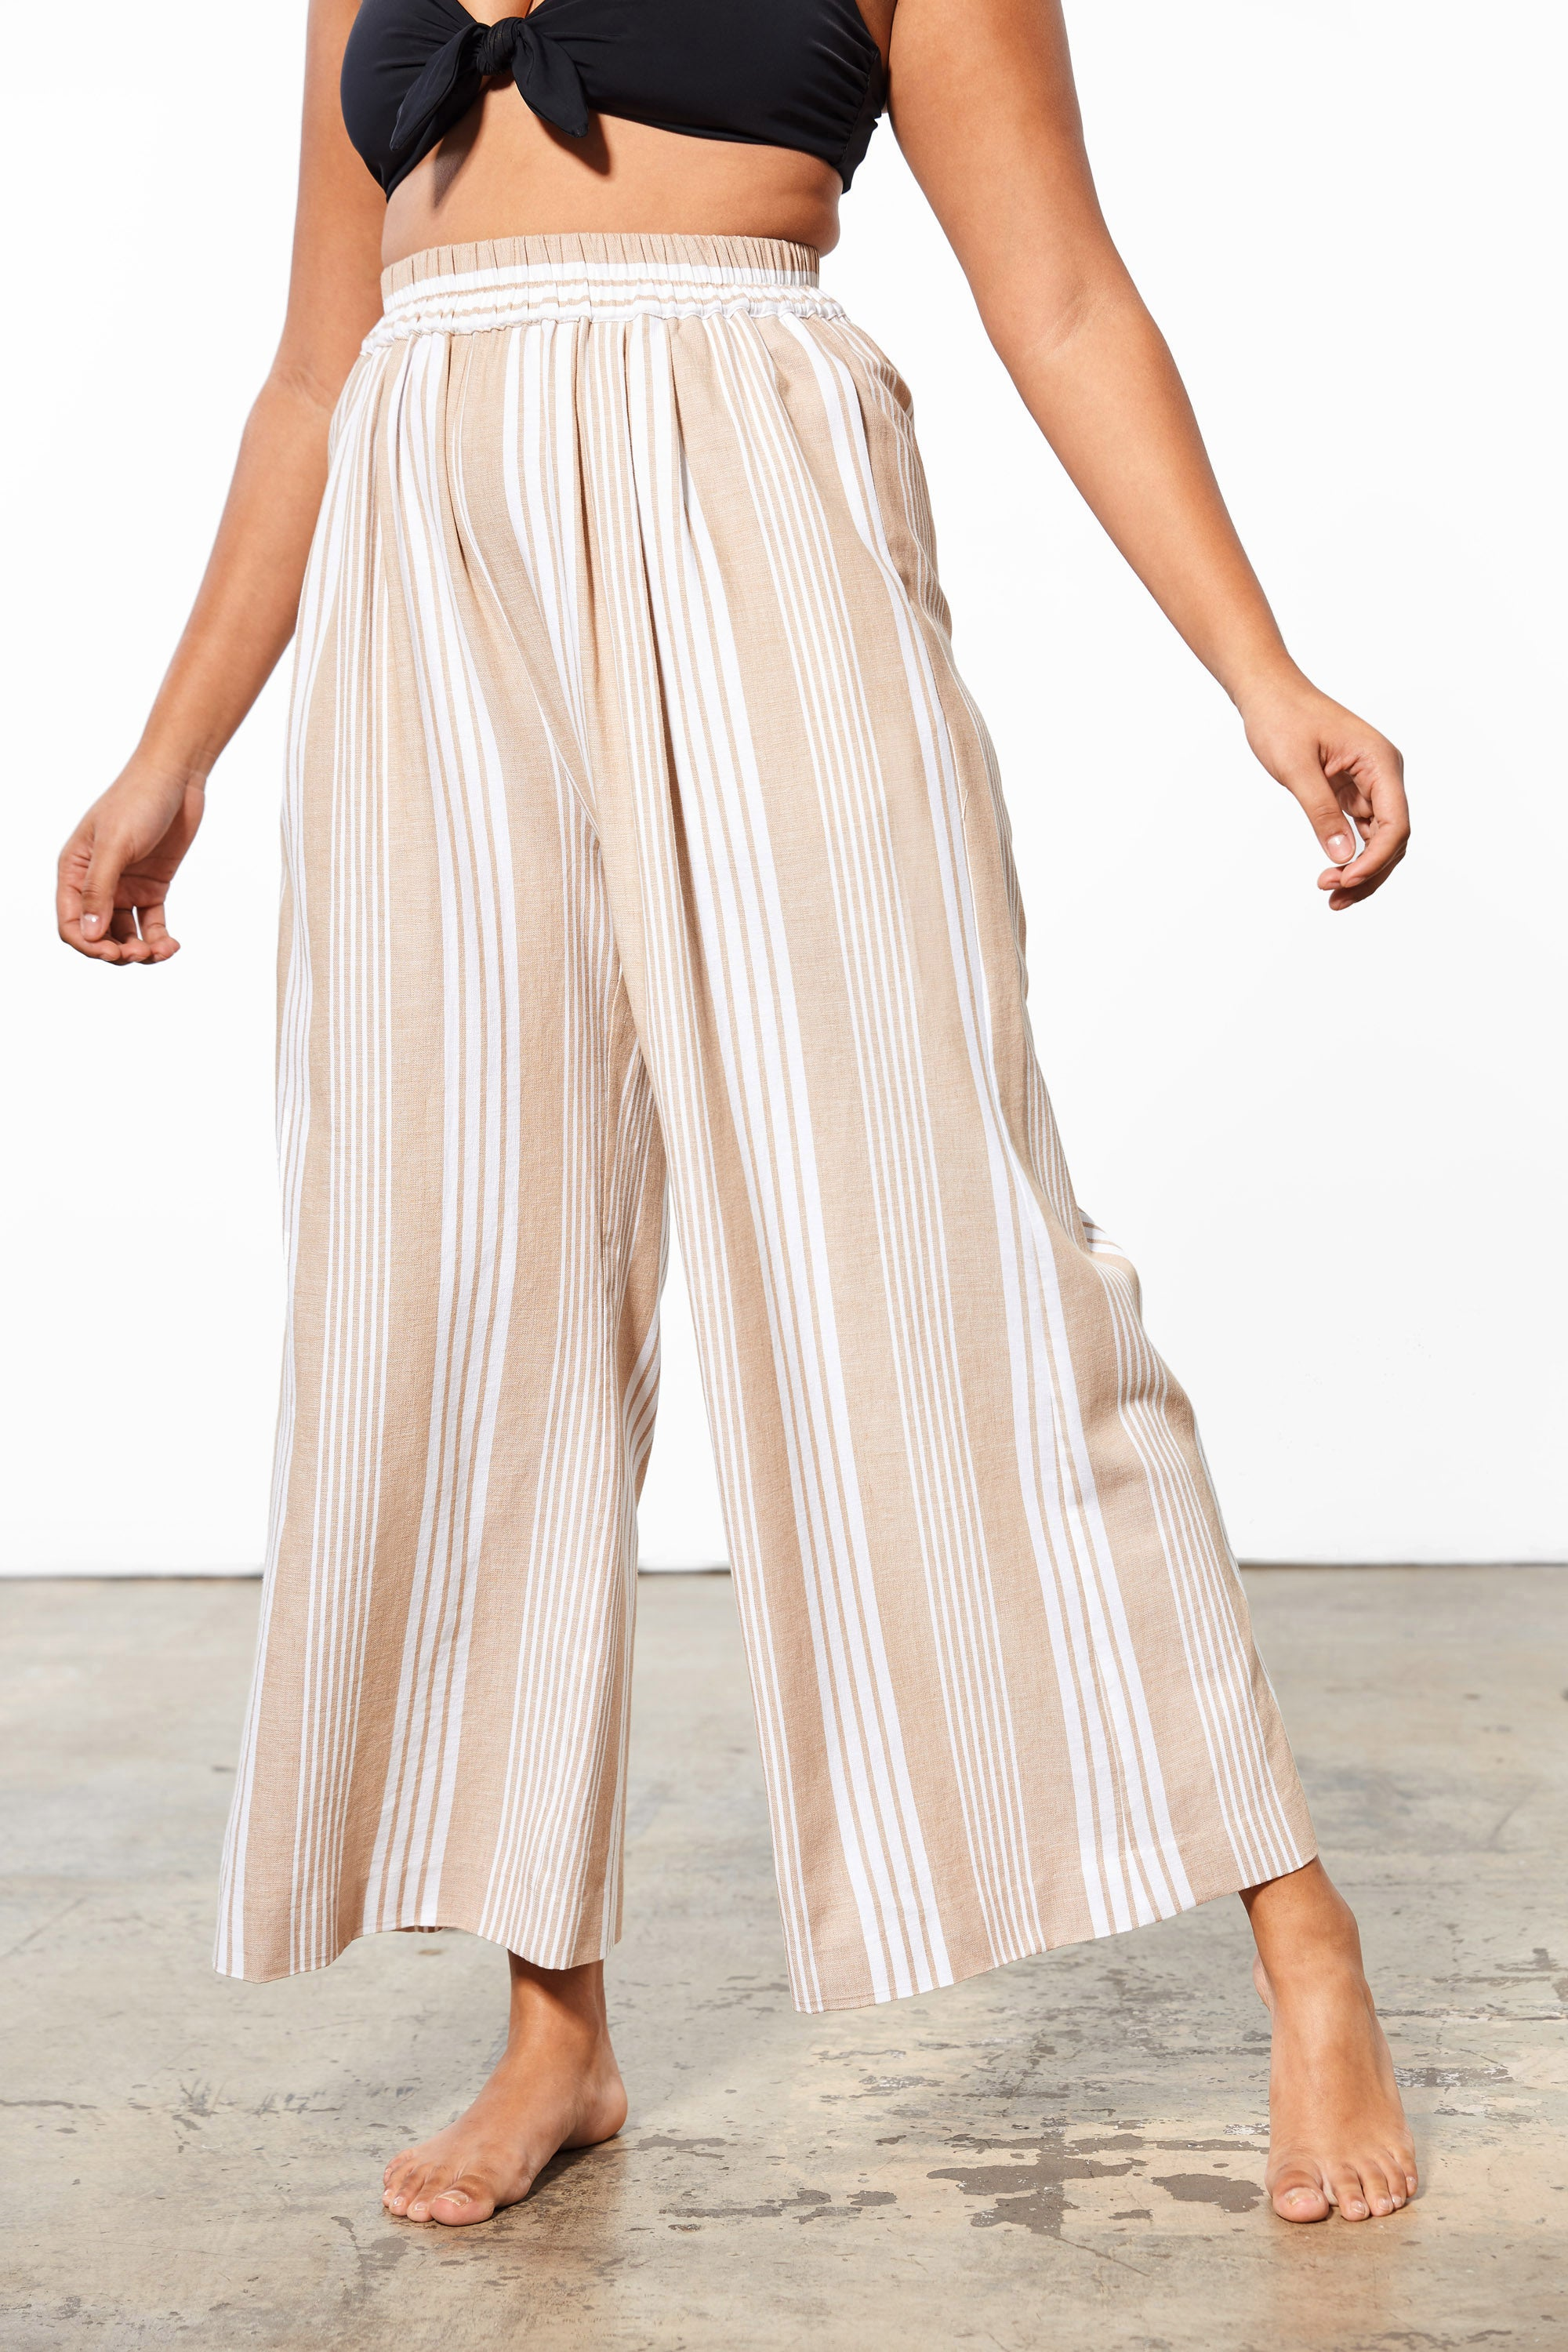 Mara Hoffman Extended White Sand Paloma Cover Up Pant in TENCEL Lyocell and organic cotton (front detail)